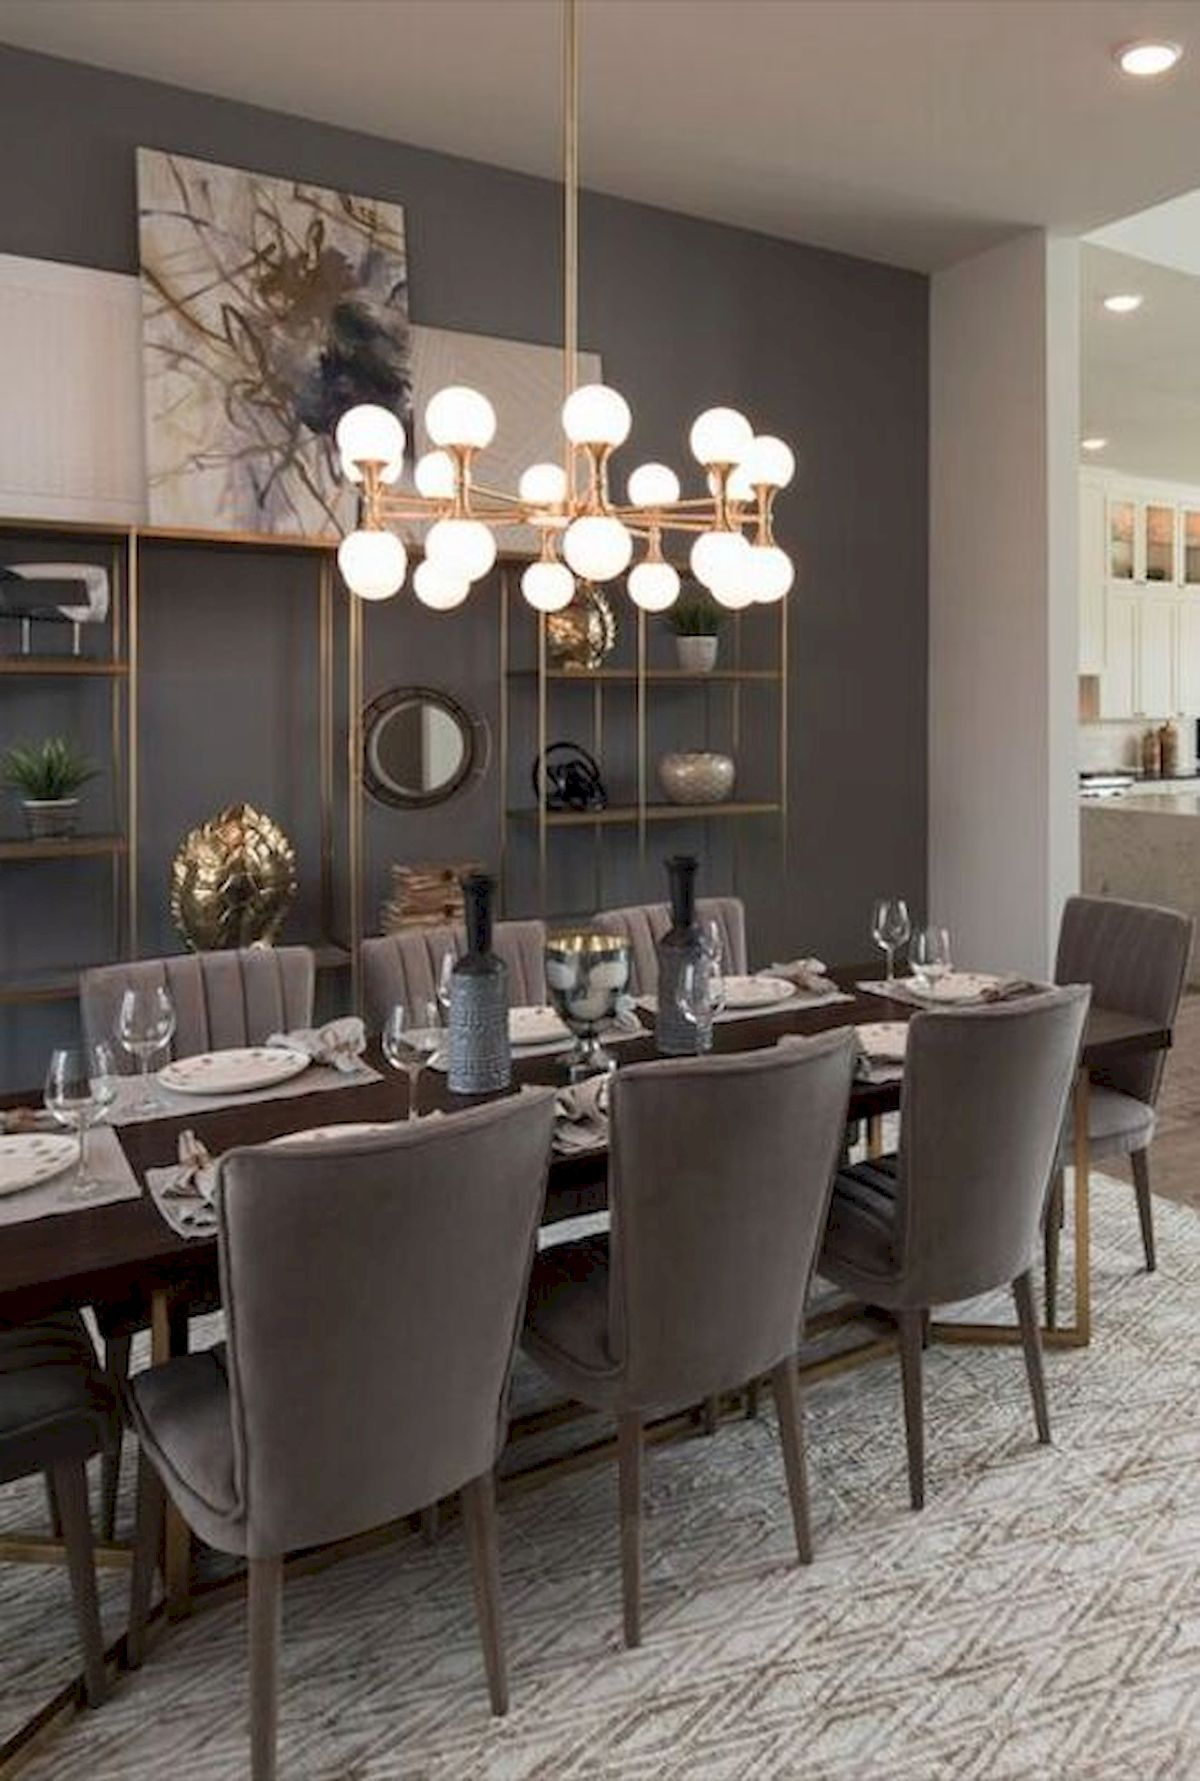 Dining Area Ideas 688065718008732914 In 2020 Contemporary Dining Room Design Contemporary Dining Room Decor Modern Dining Room